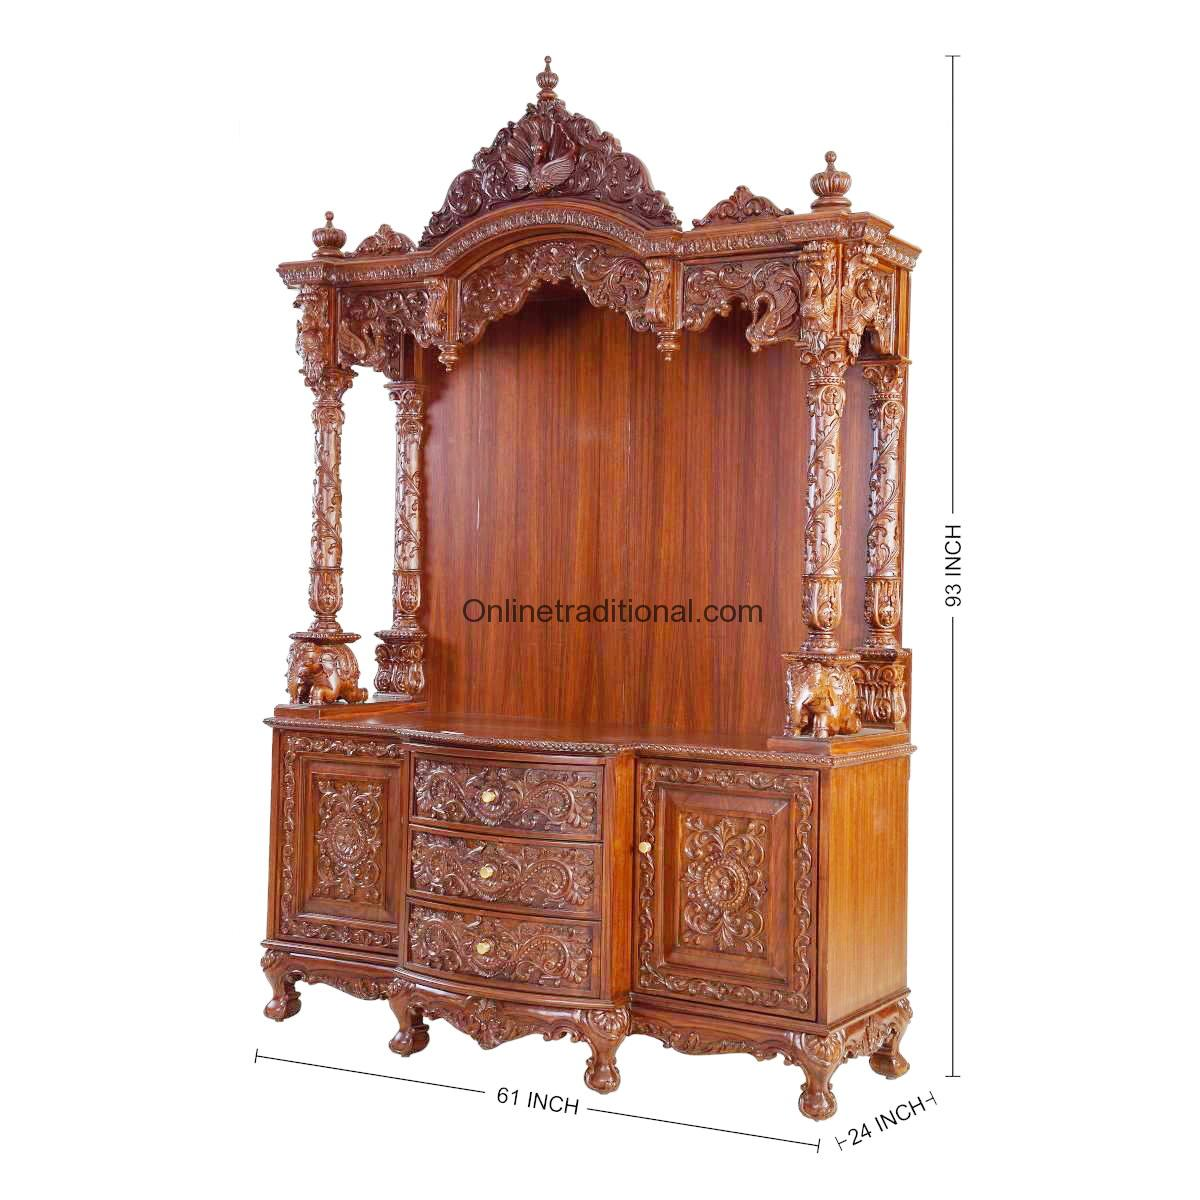 20 Mandir Designs For Indian Homes: Traditional Teak Wooden Temple/Mandir For Home In India